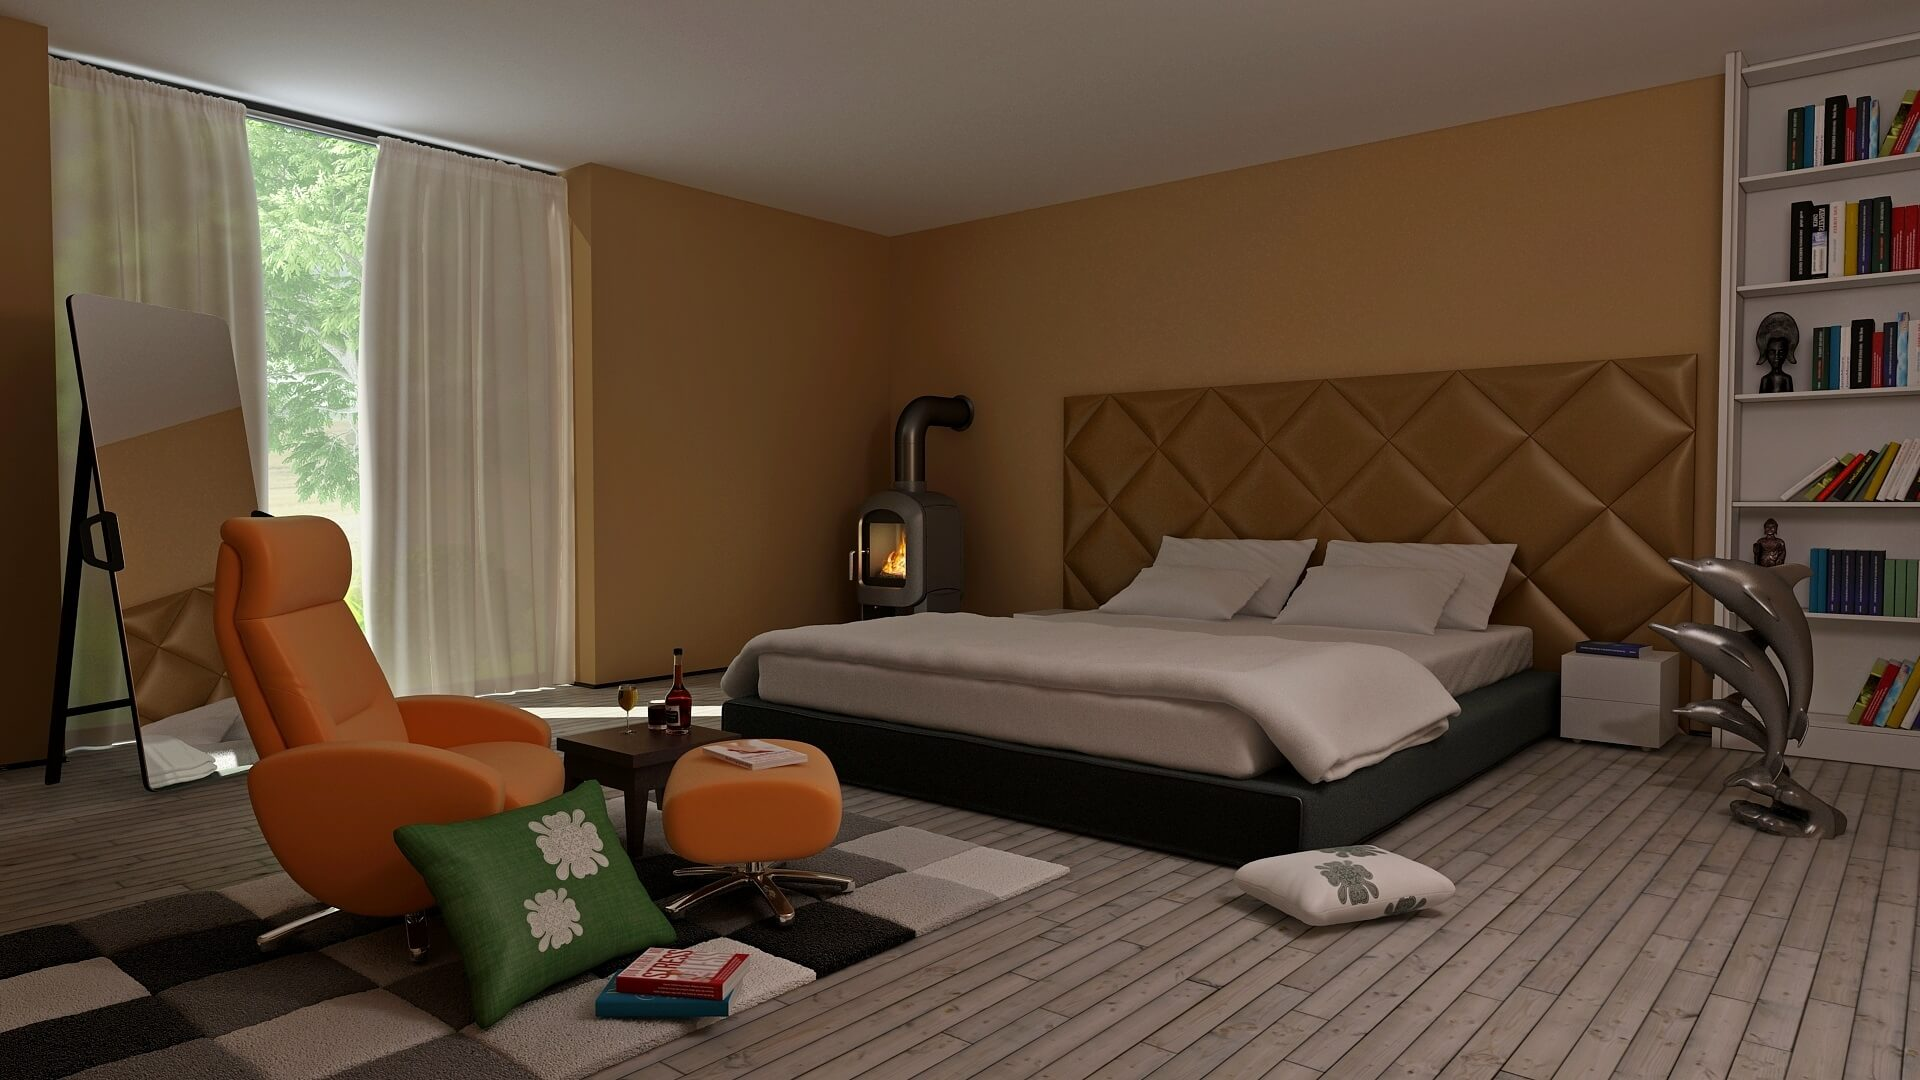 Kids Bedroom For 2017 Interior Design Design News And Architecture Trends